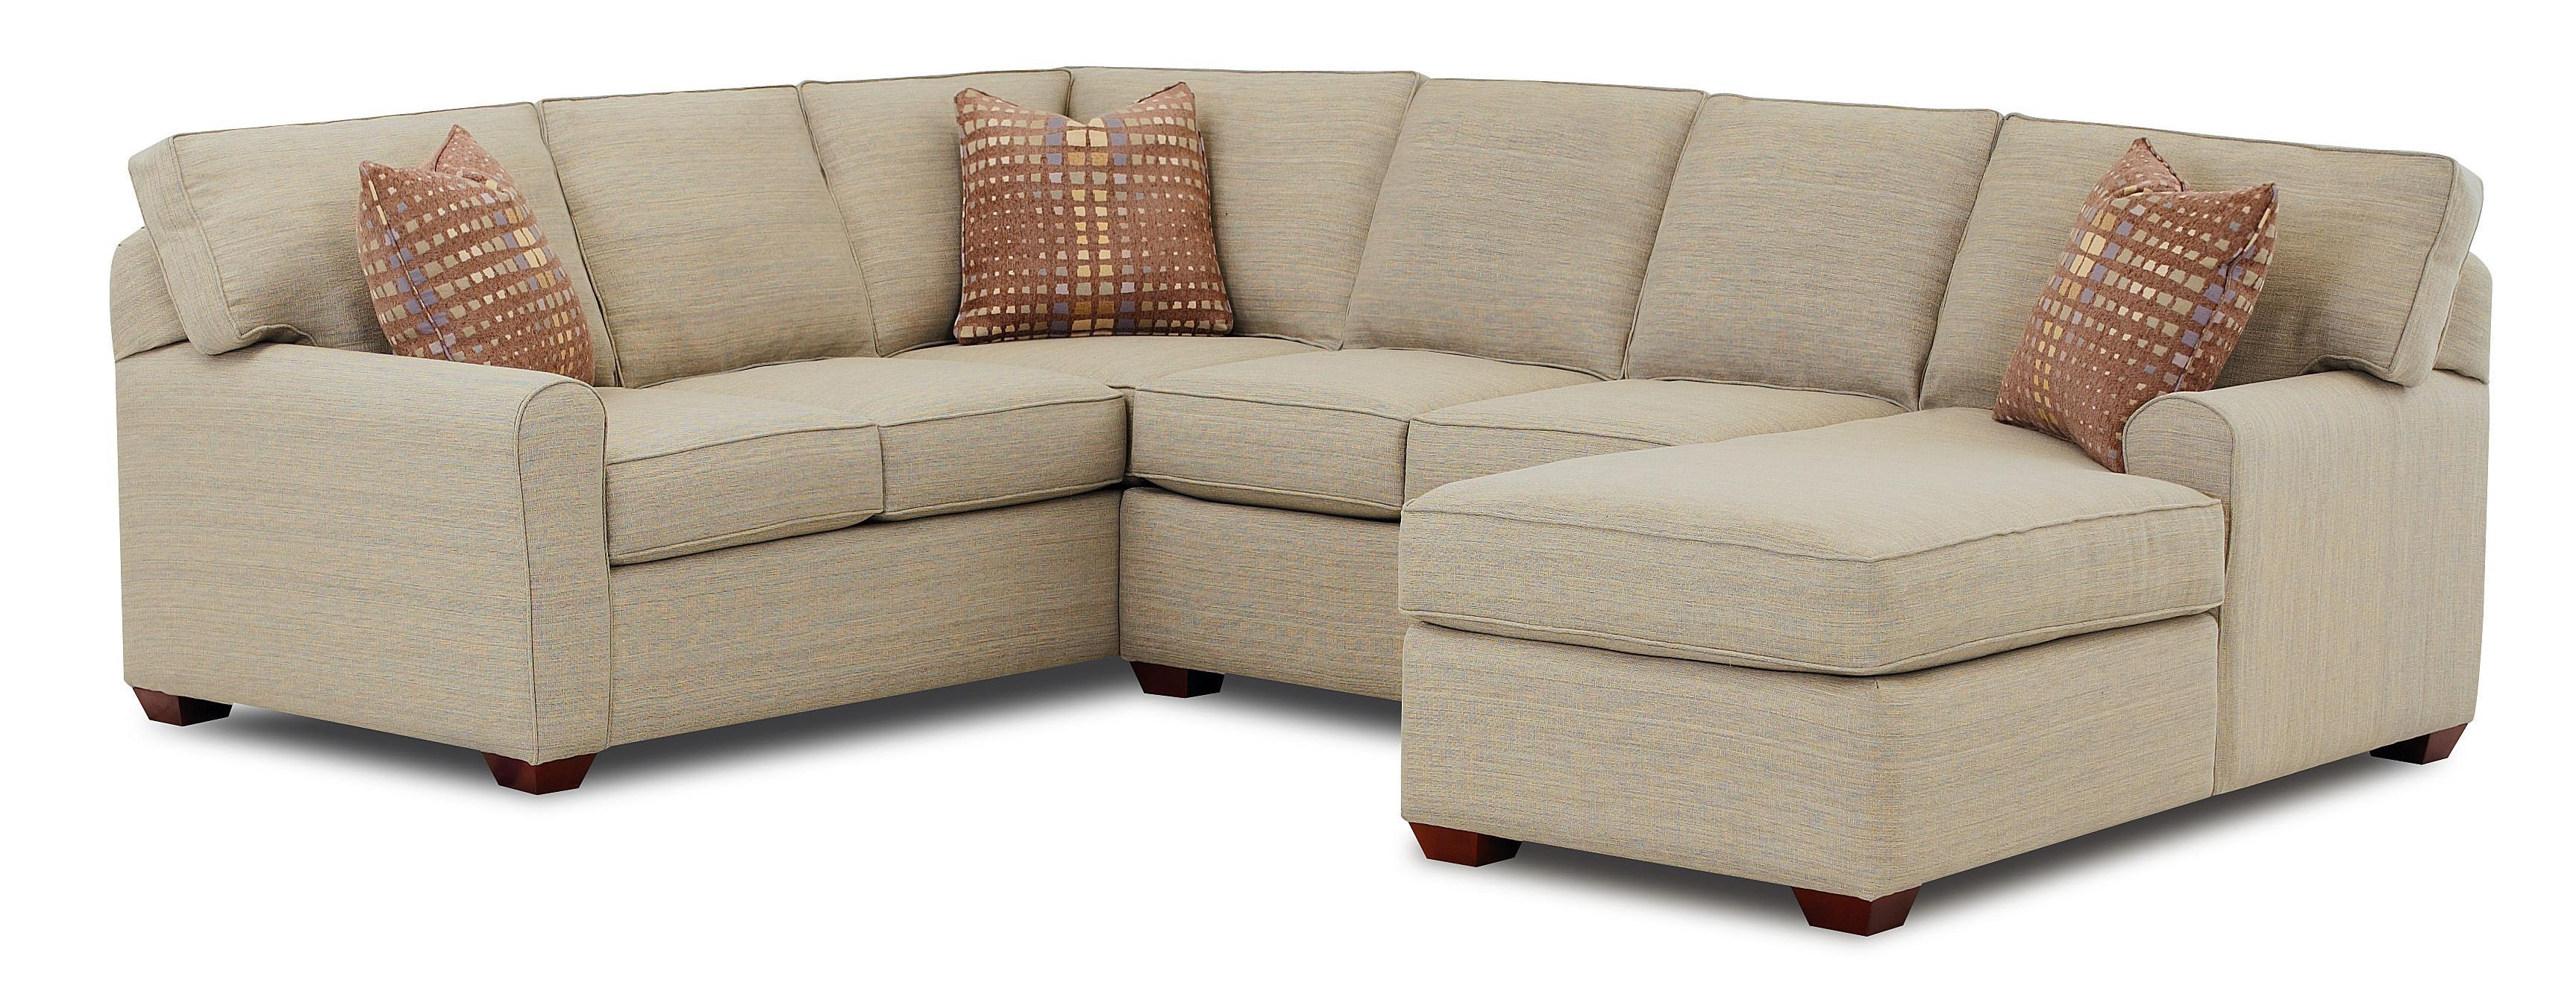 Sofas: Macys Sofa Bed | Sectional Sofa Pull Out Bed | Sleeper Sofa Regarding Pull Out Sectional (View 15 of 20)